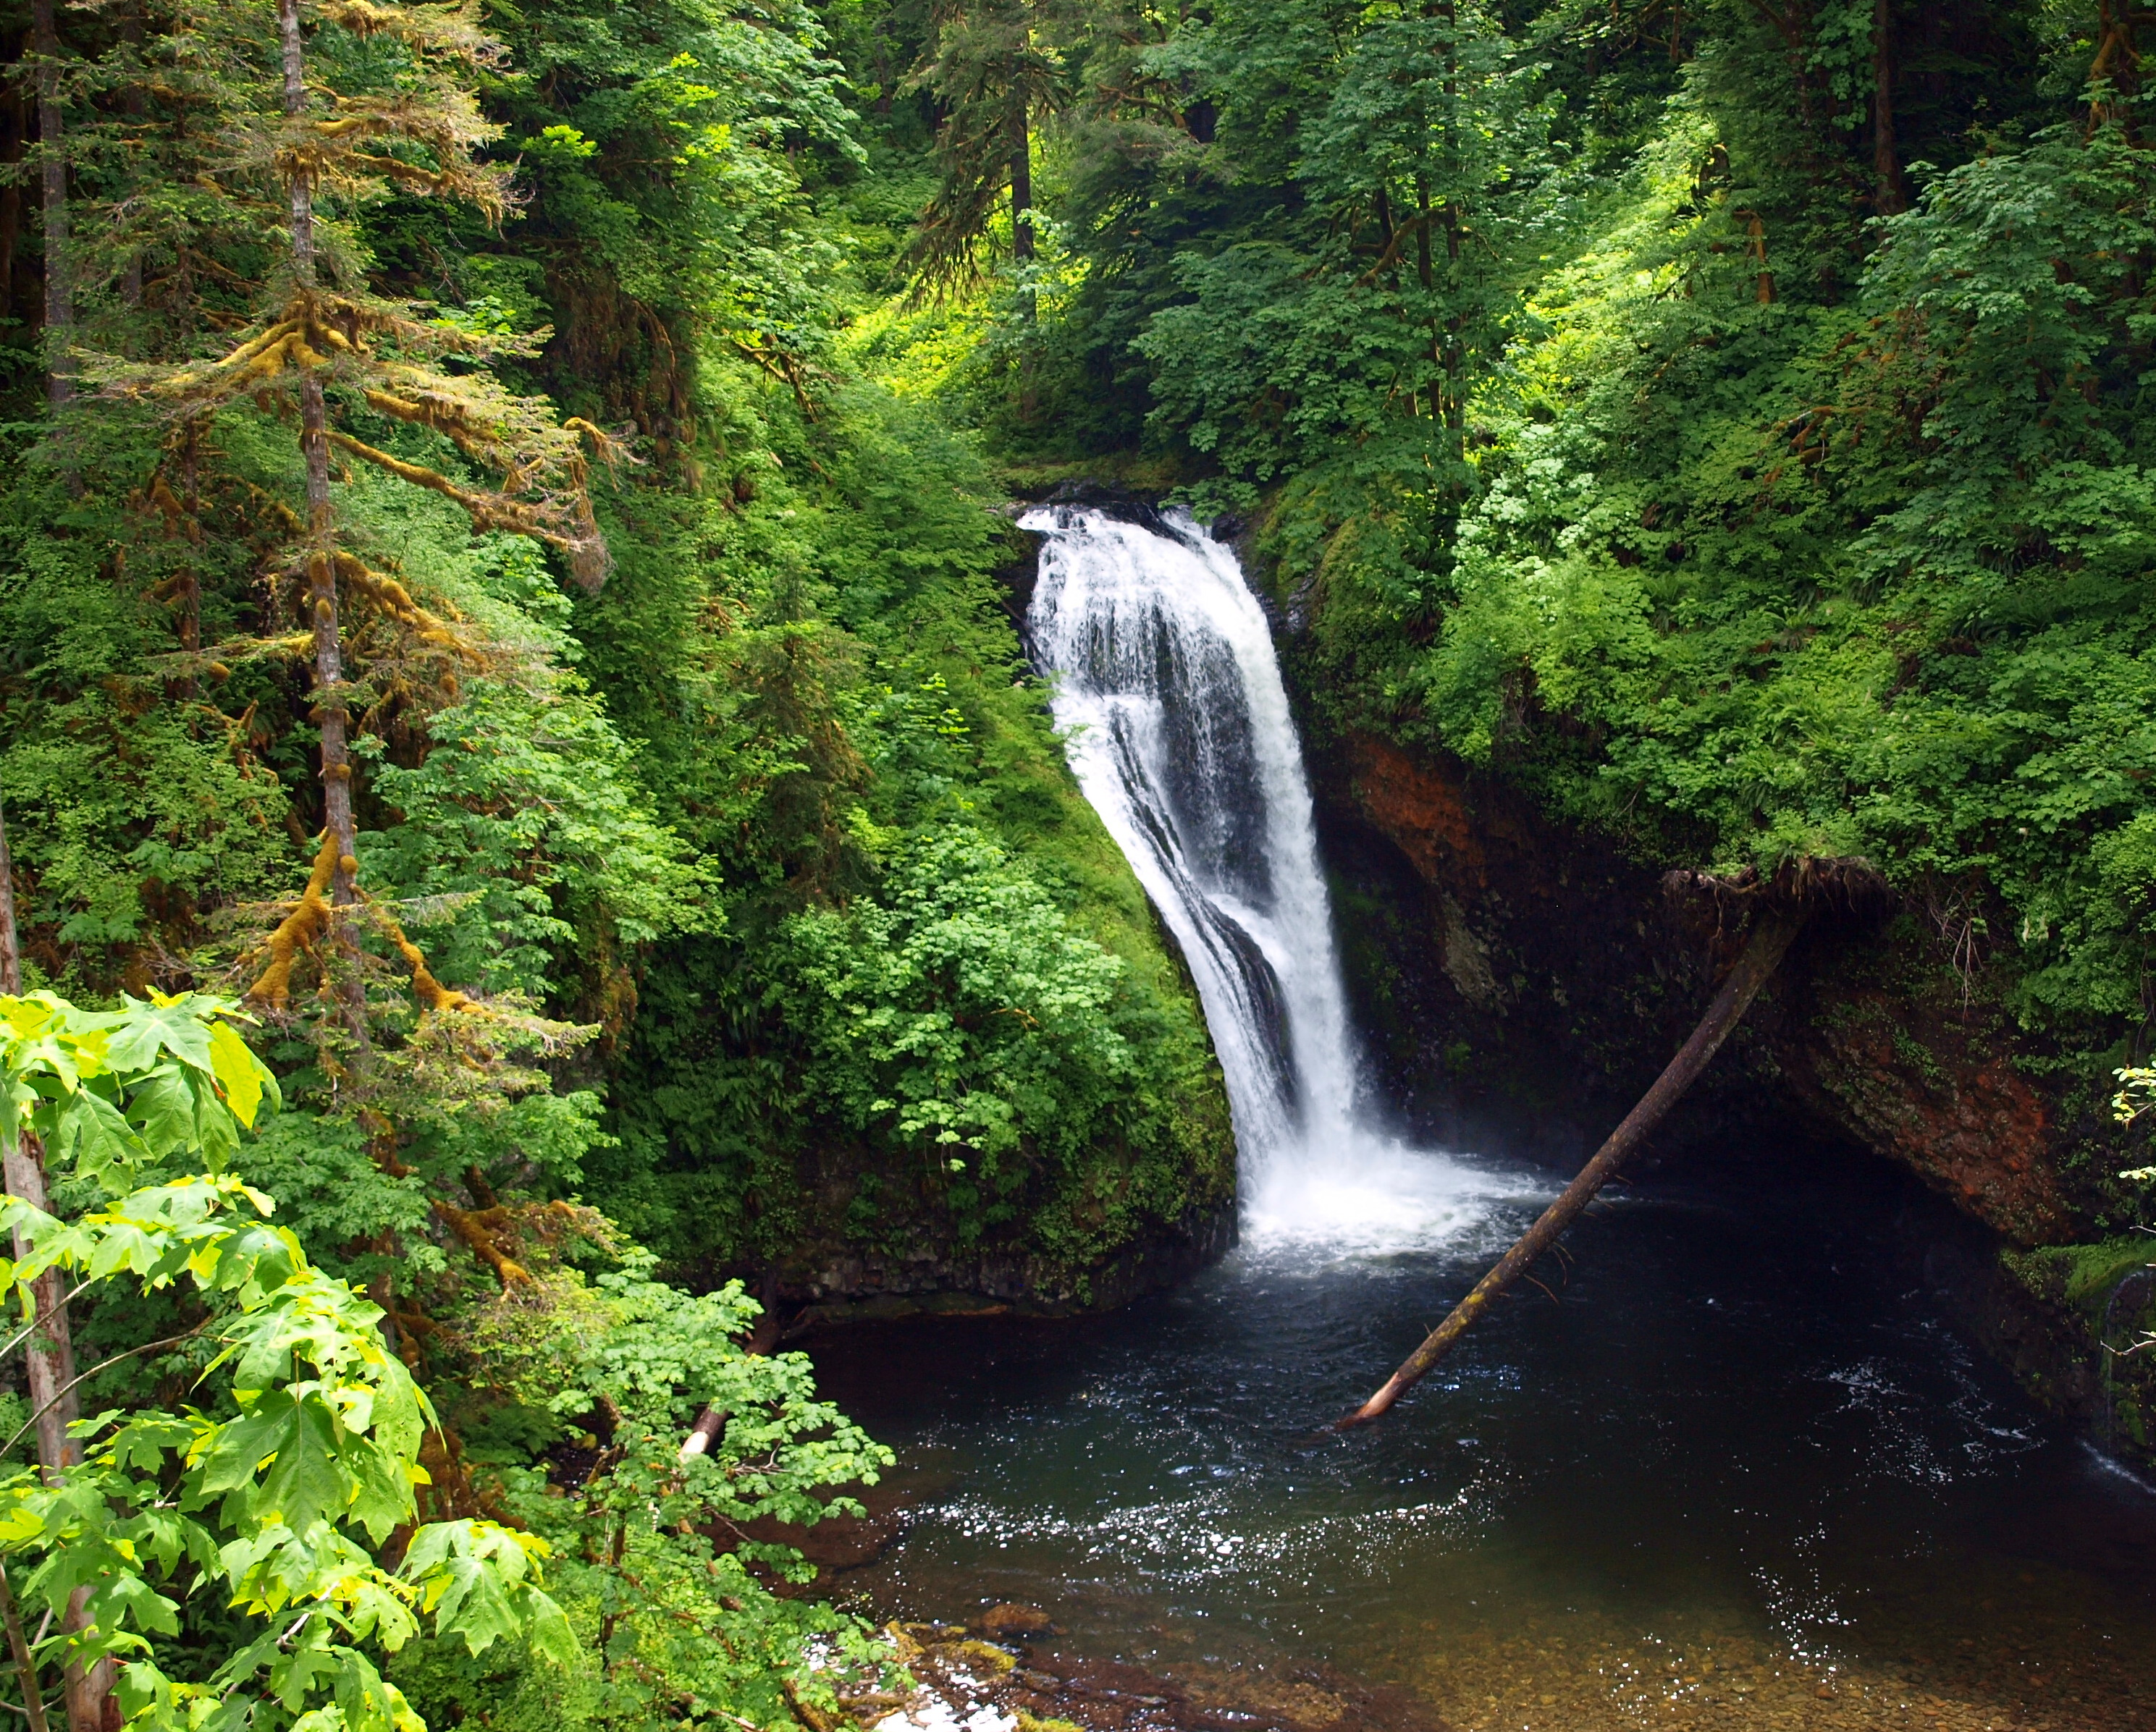 butte falls Hike description a little over an hour's drive from portland, this short hike will take you to two beautiful waterfalls in the foothills of the cascade mountains.